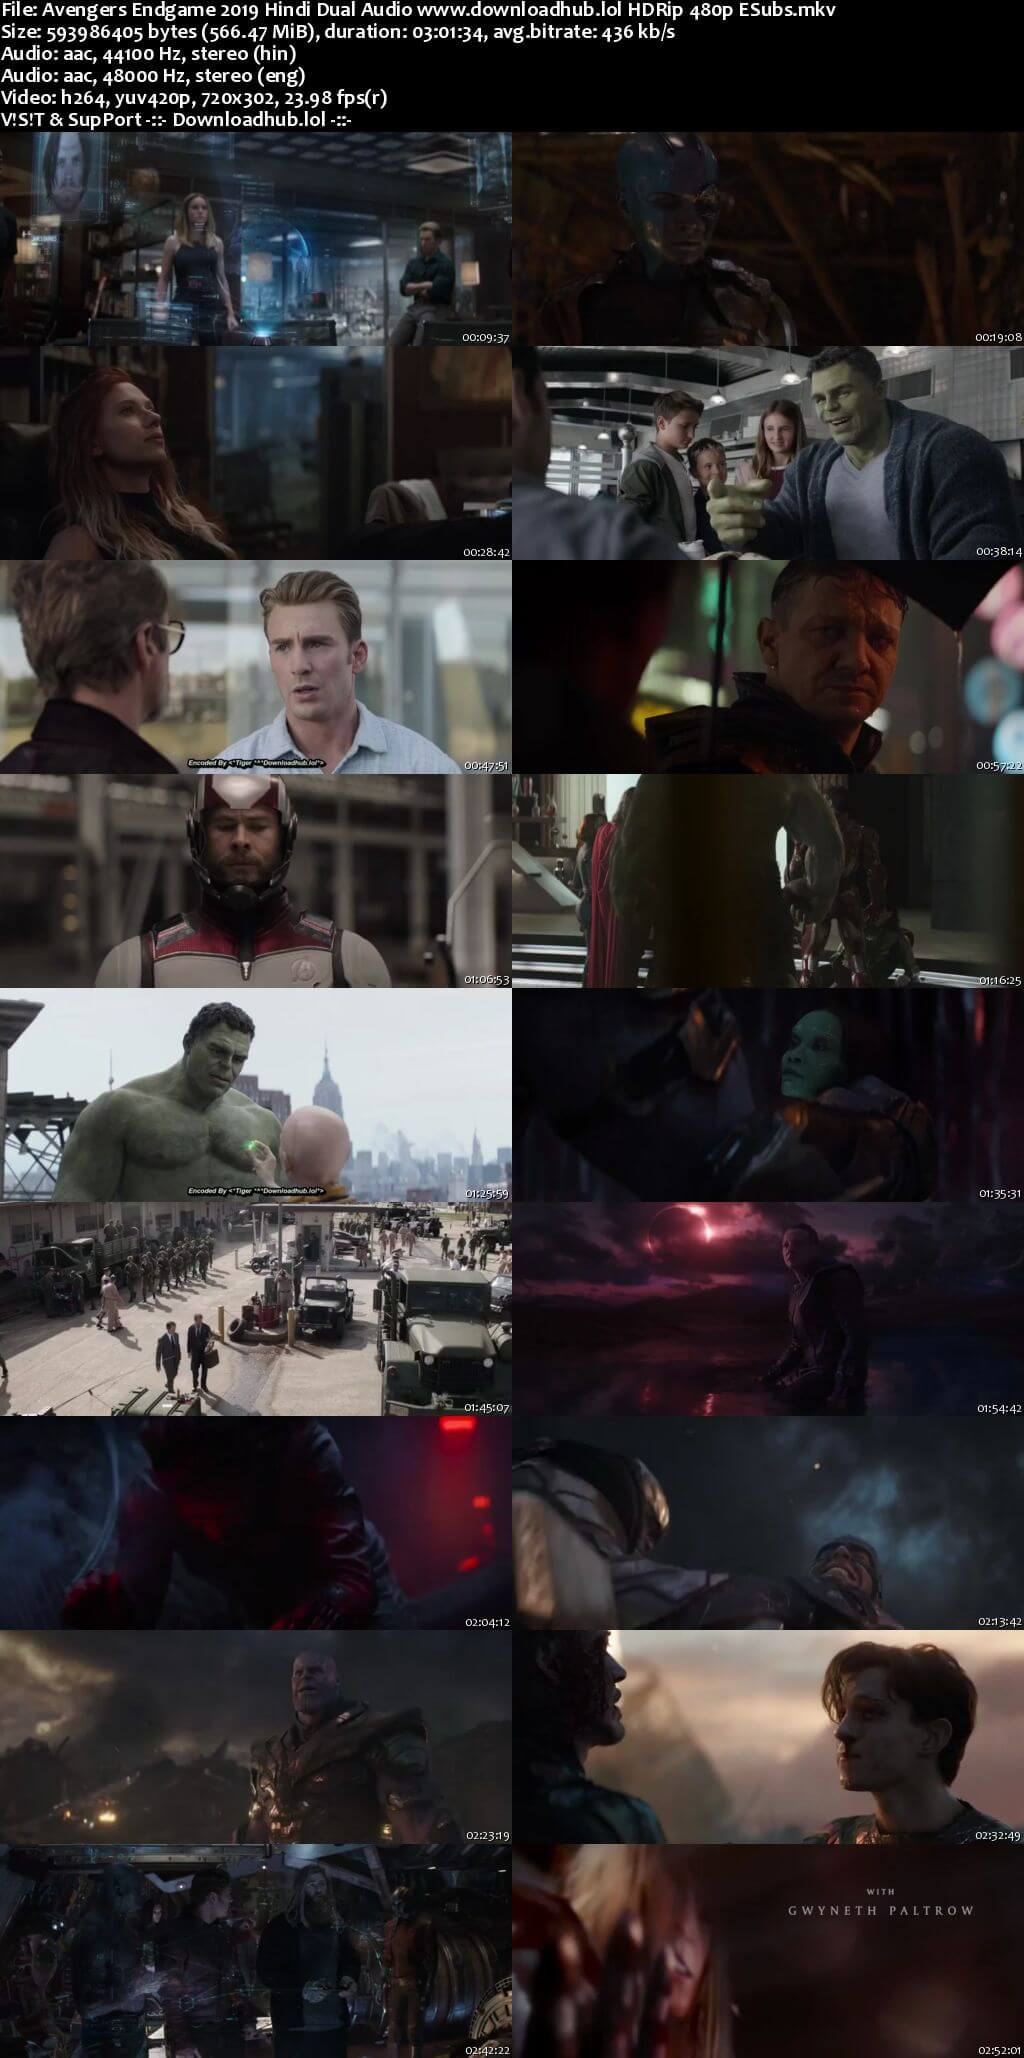 Avengers Endgame 2019 Hindi Dual Audio 550MB HDRip 480p ESubs